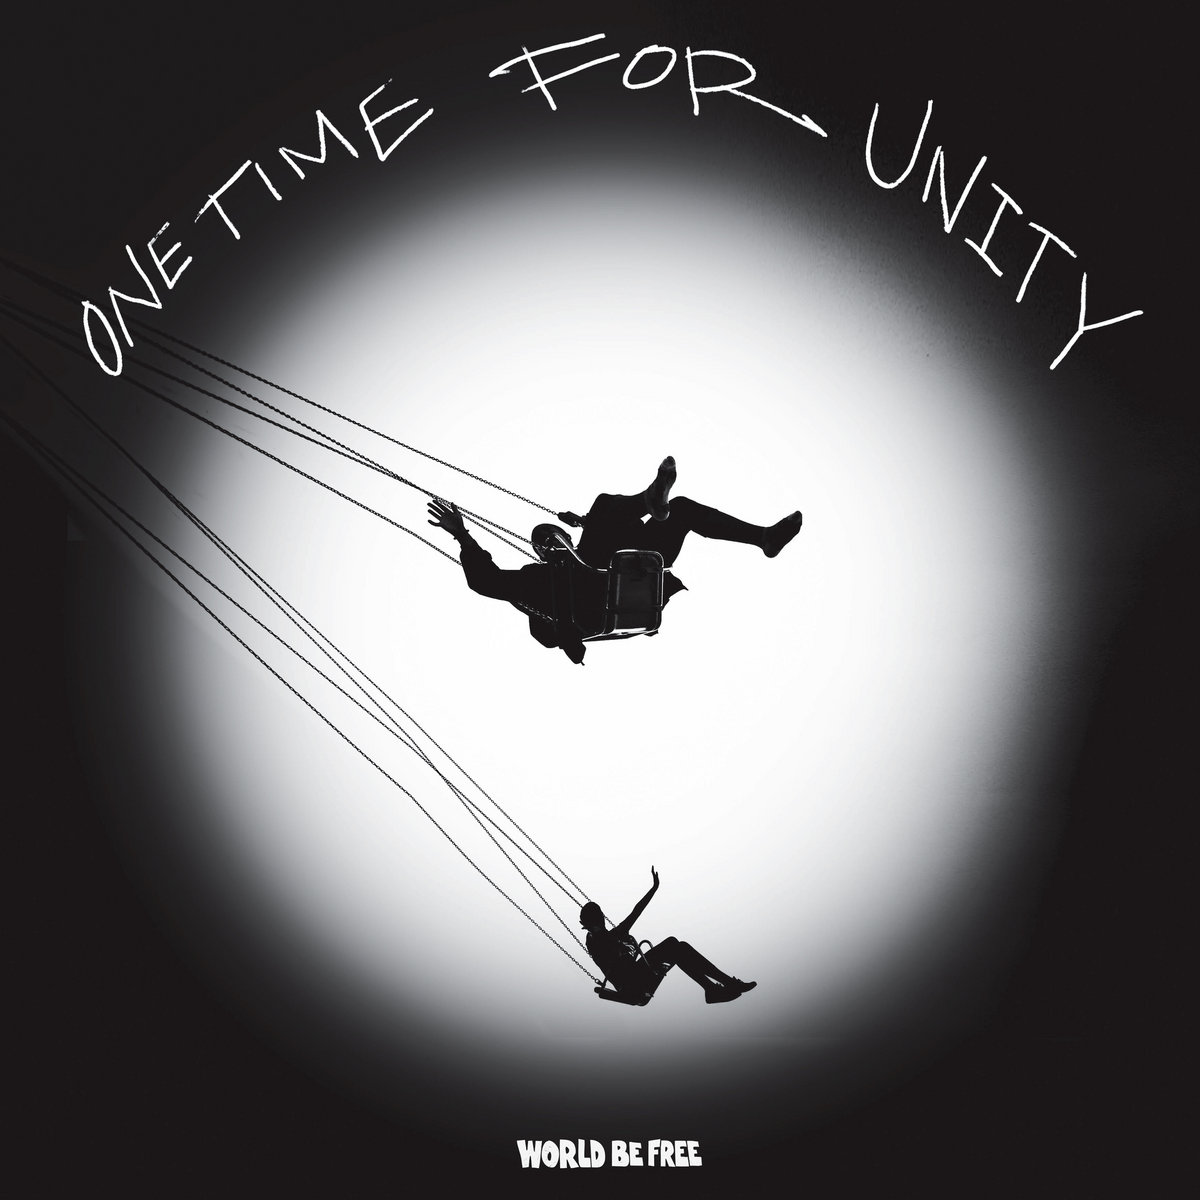 -sold out- World Be Free 'One time for unity' 12